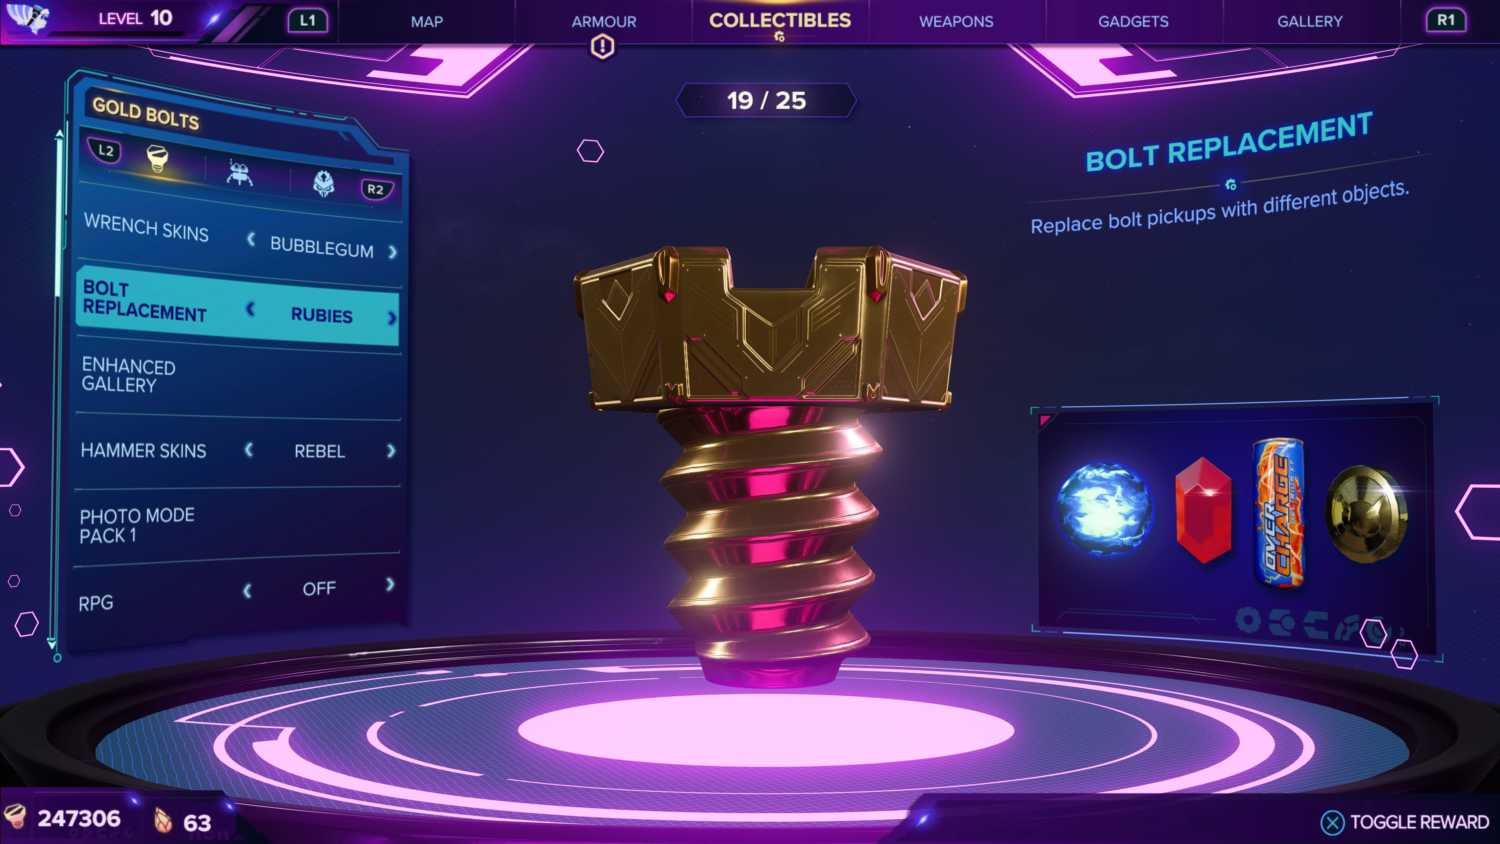 gold bolts in challenge mode